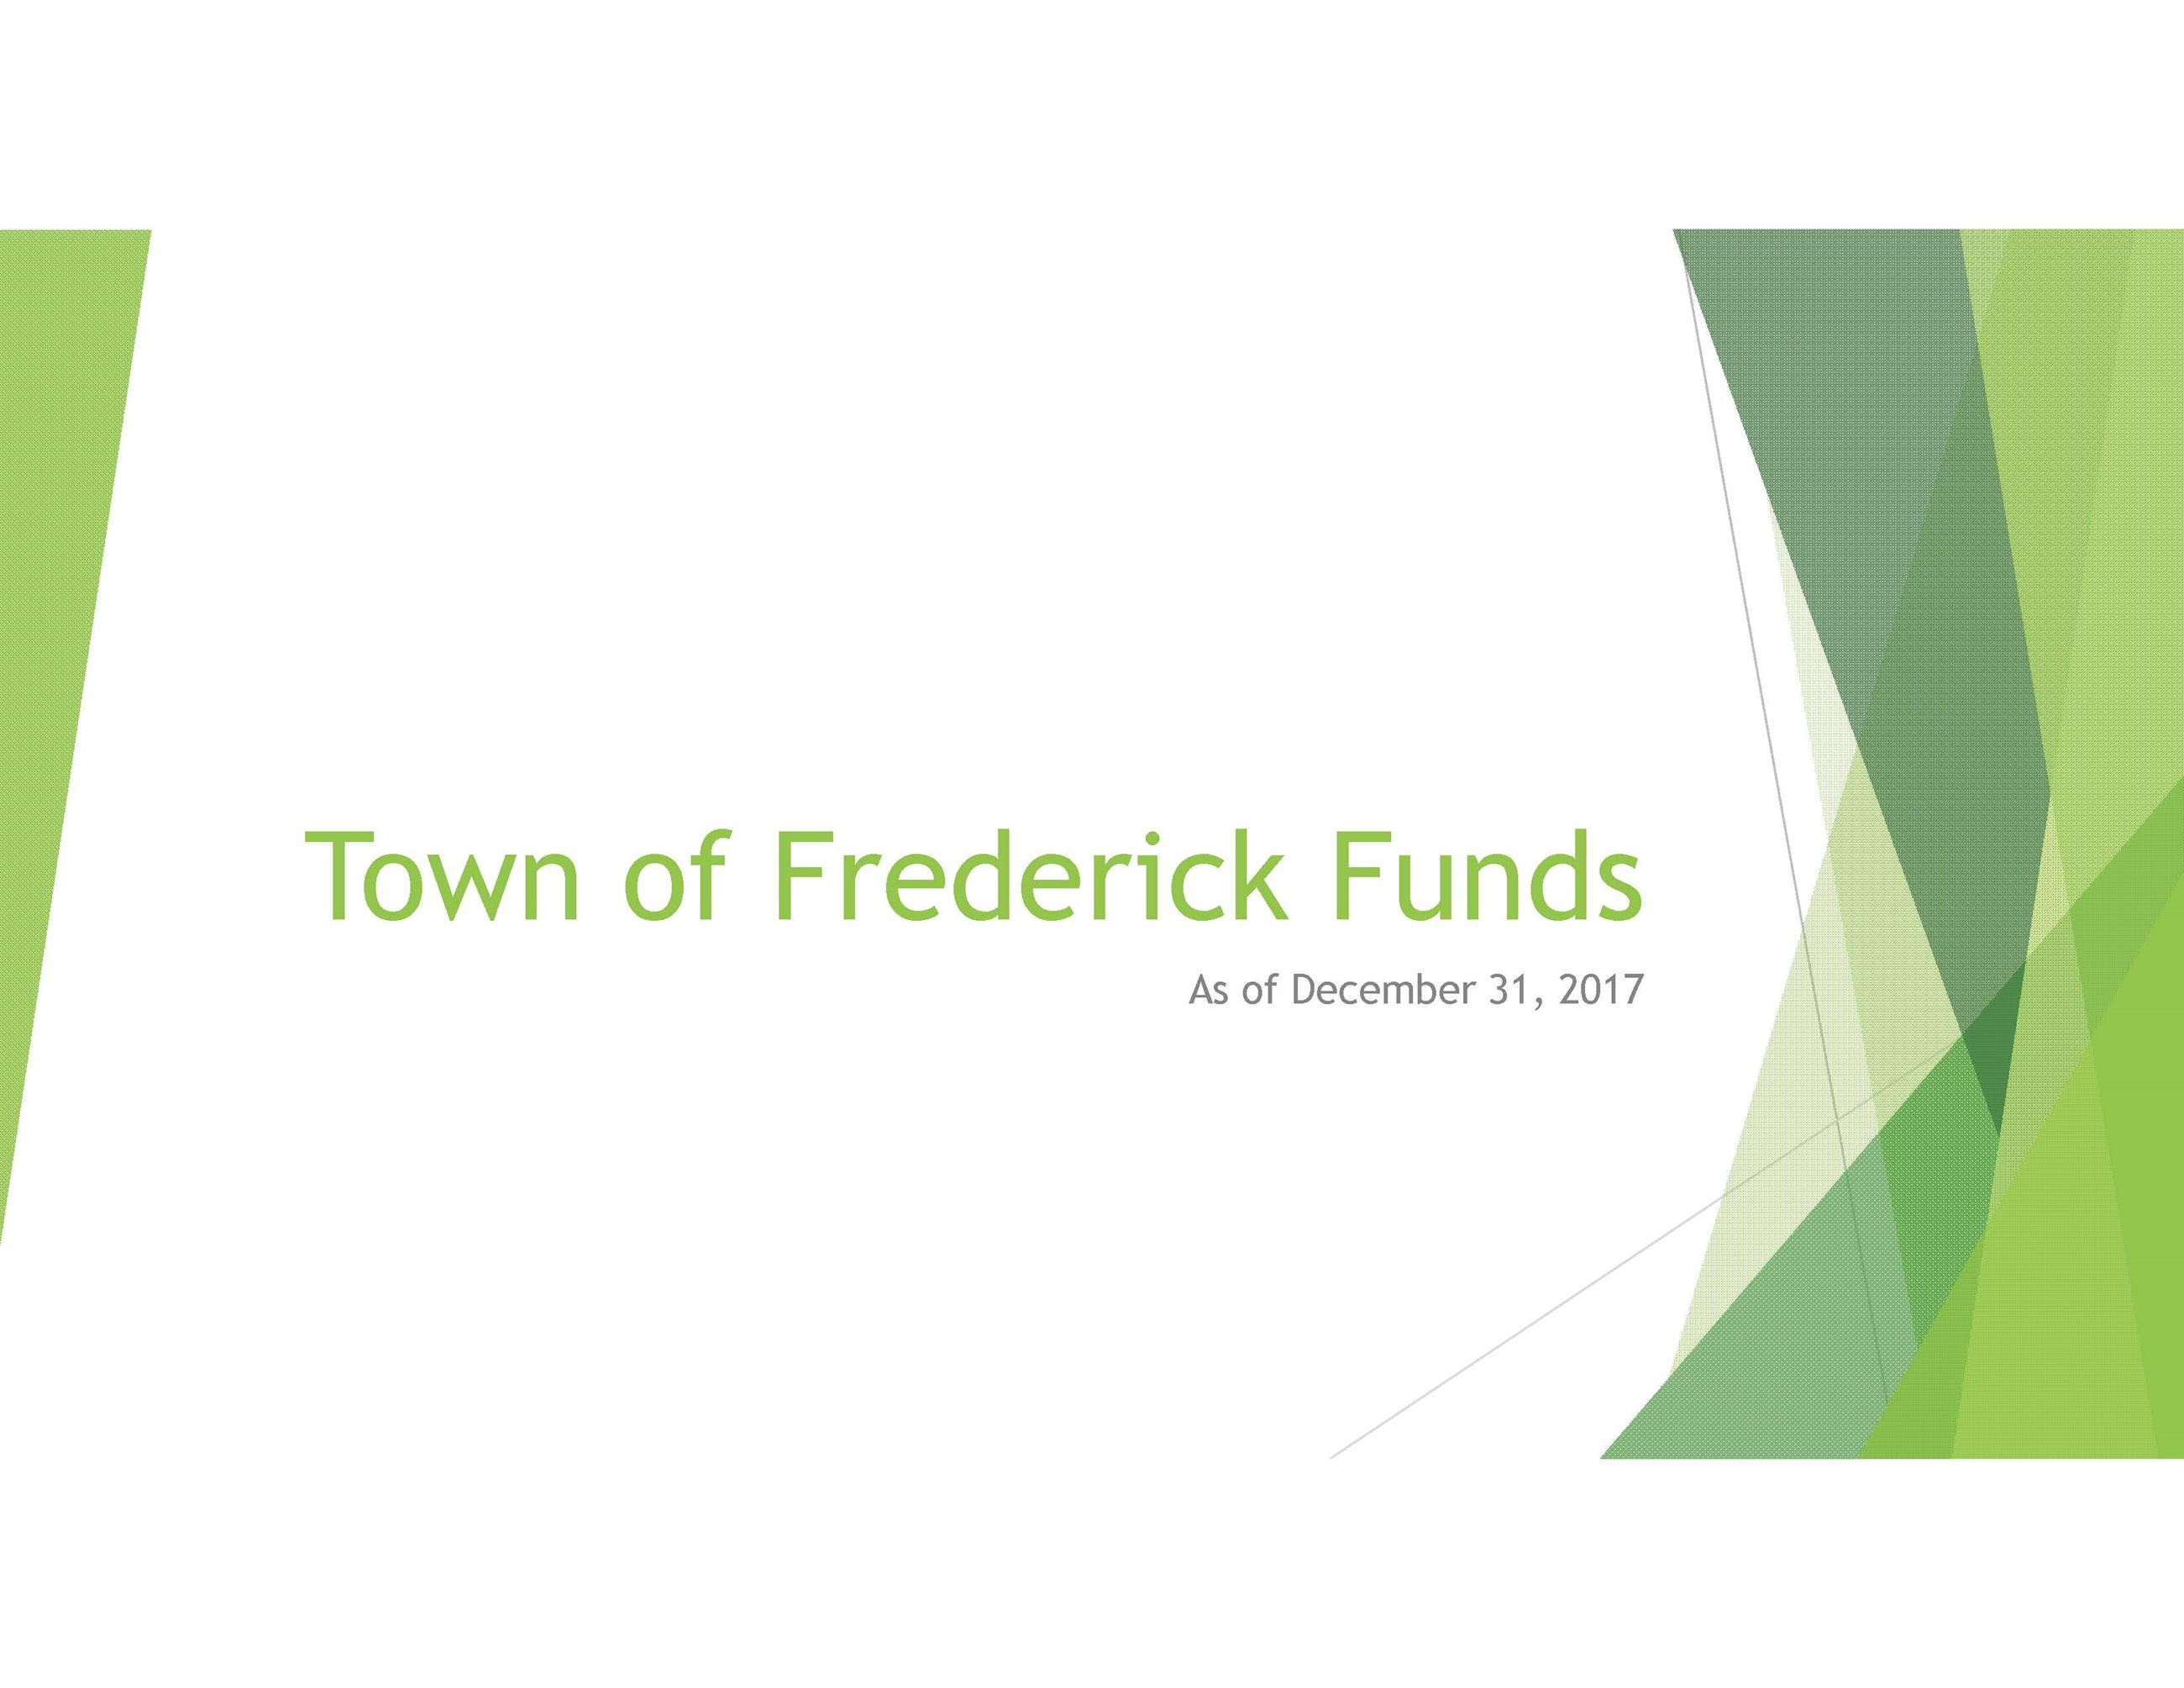 Town of Frederick Funds New Pg1